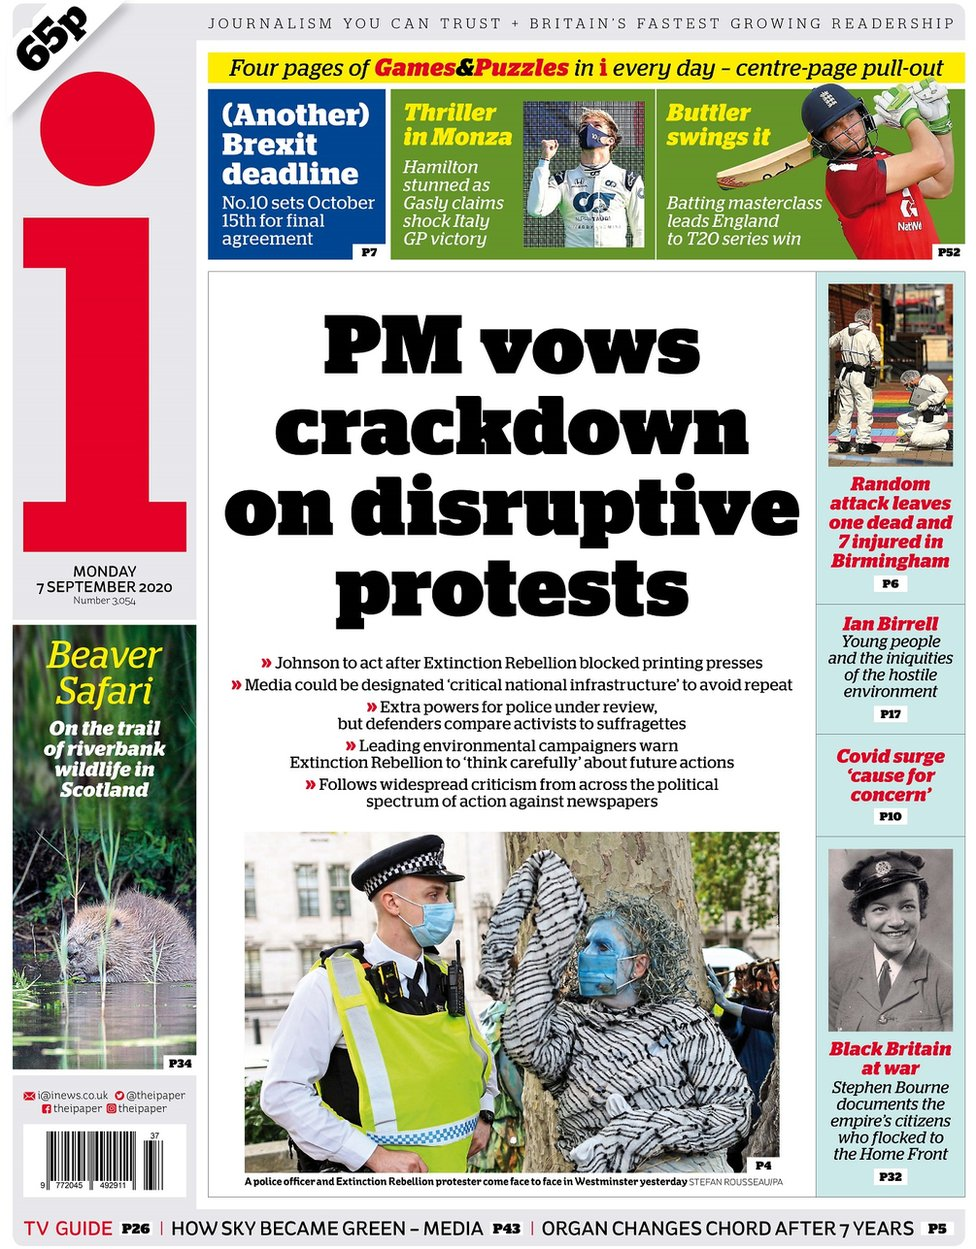 The i front page, 7/9/20